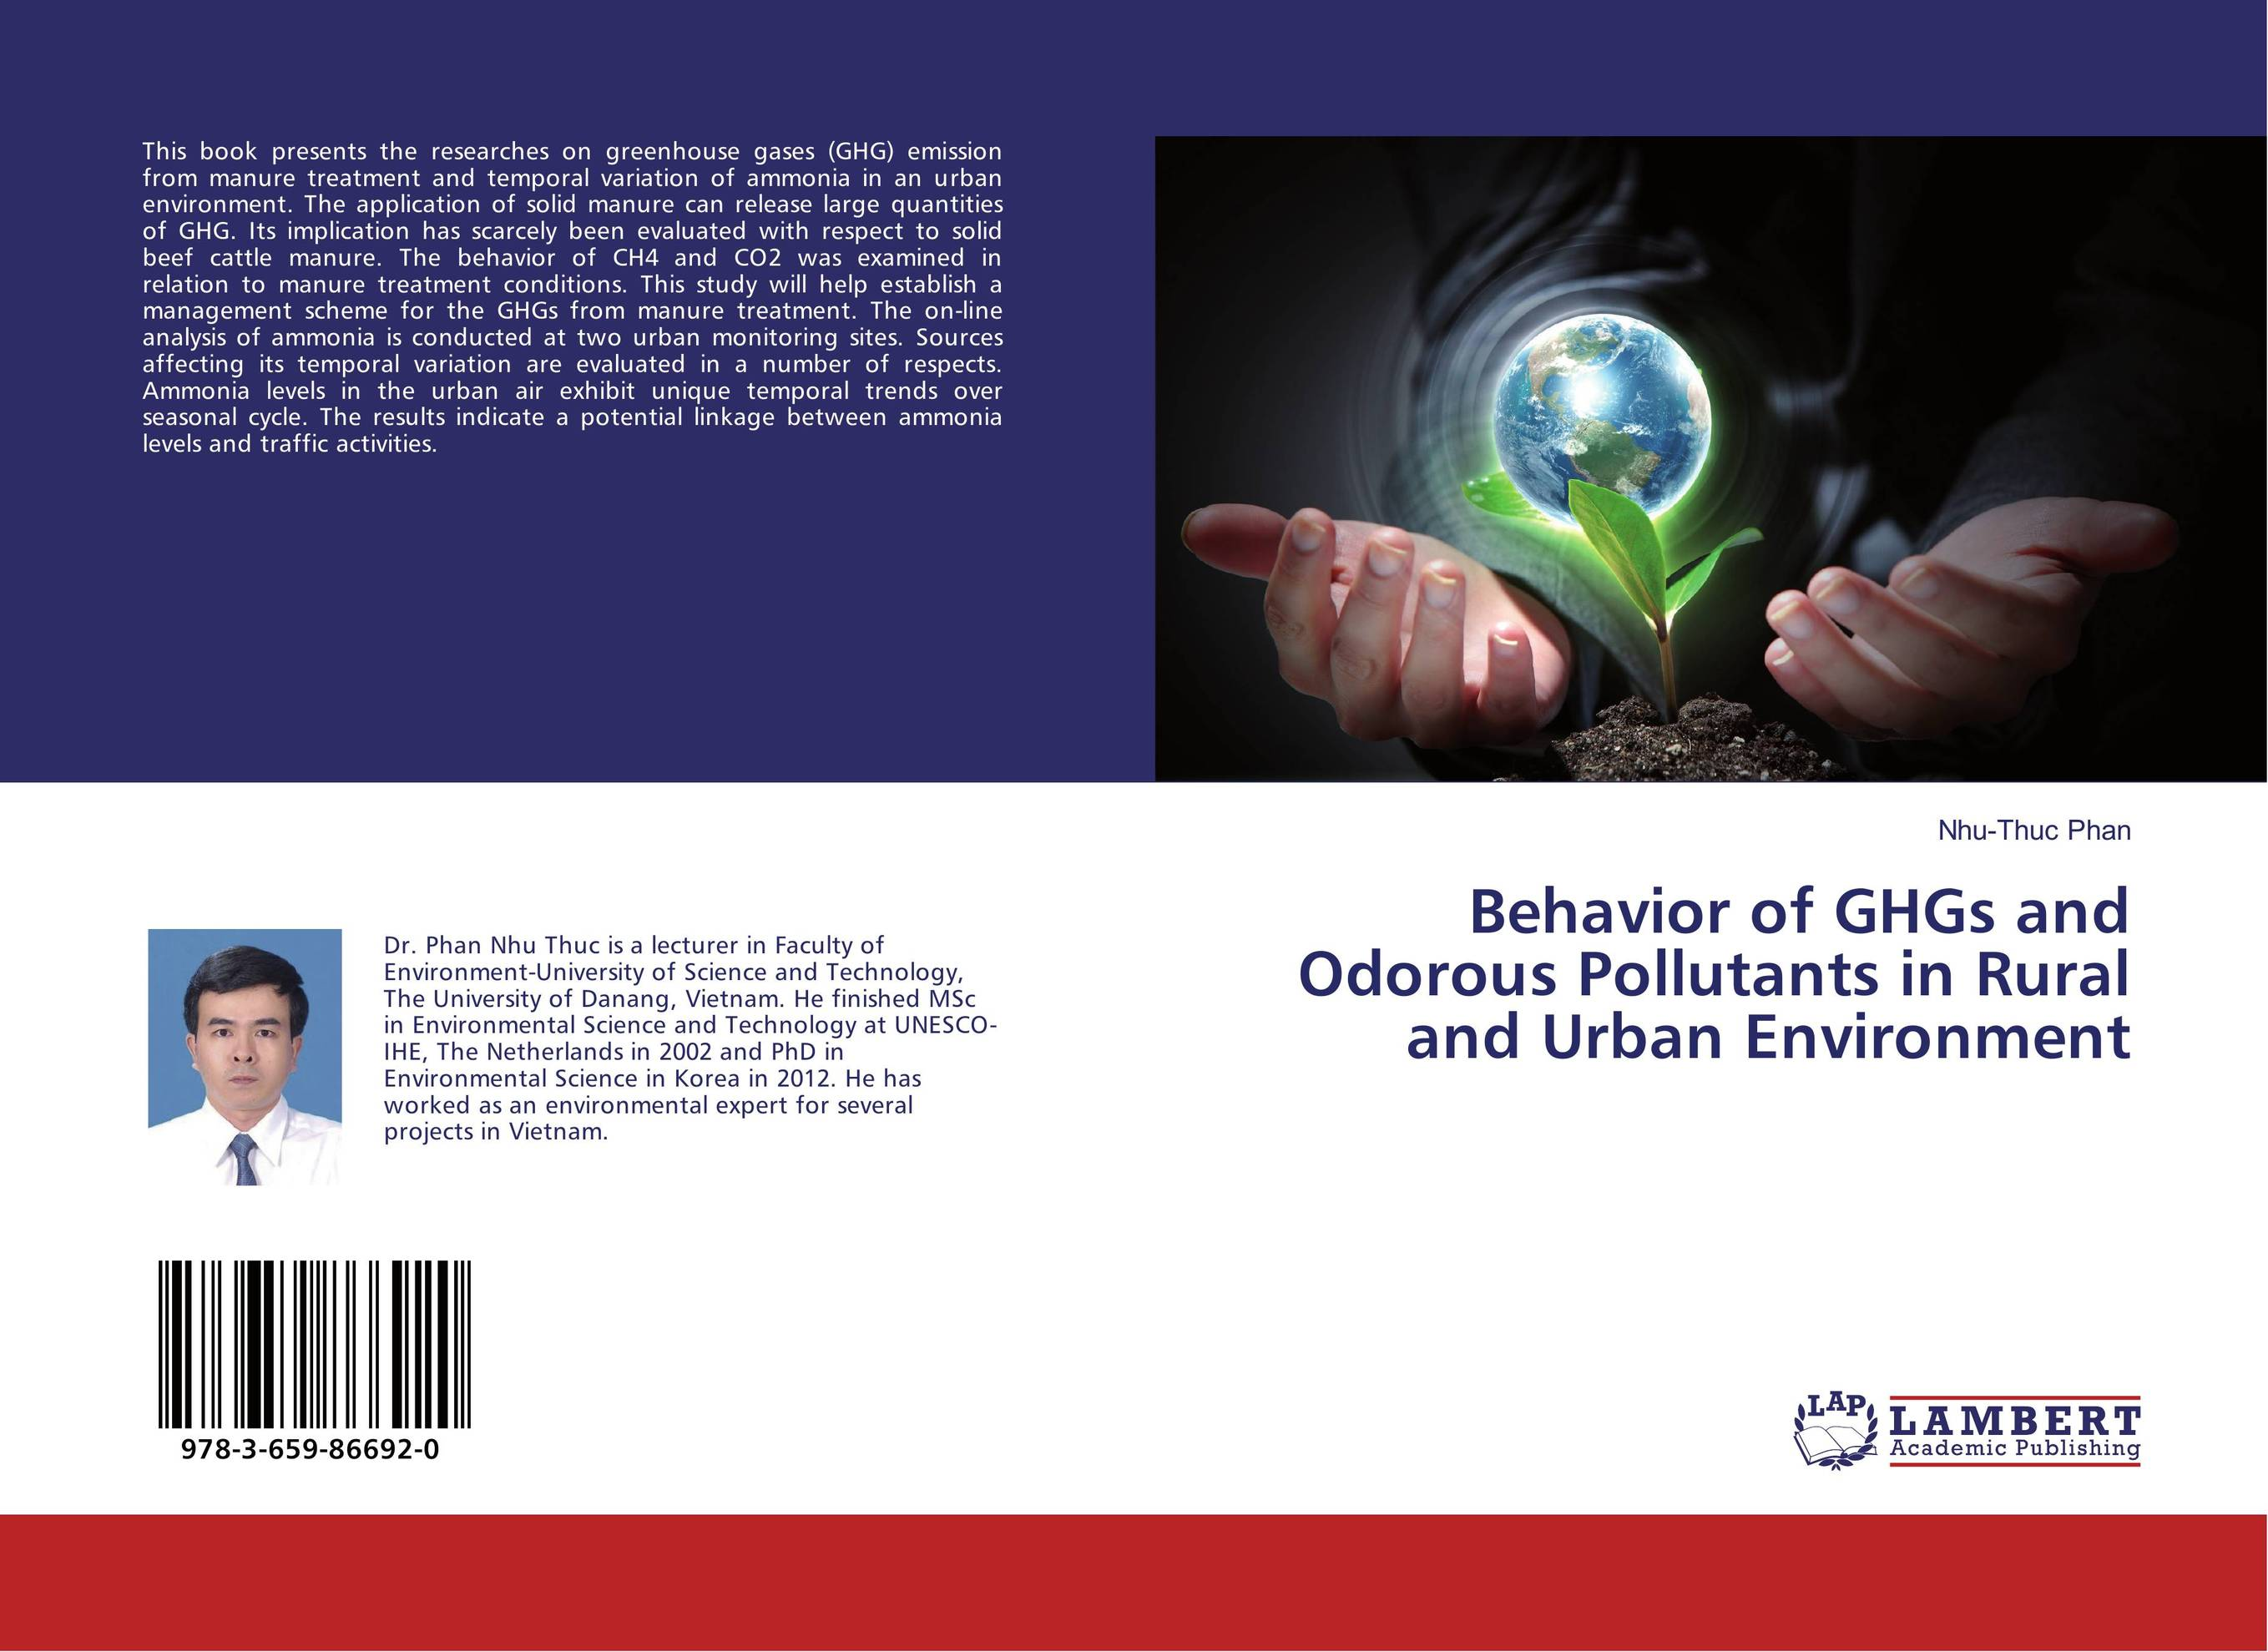 Behavior of GHGs and Odorous Pollutants in Rural and Urban Environment impacts of urban traffic management on air quality